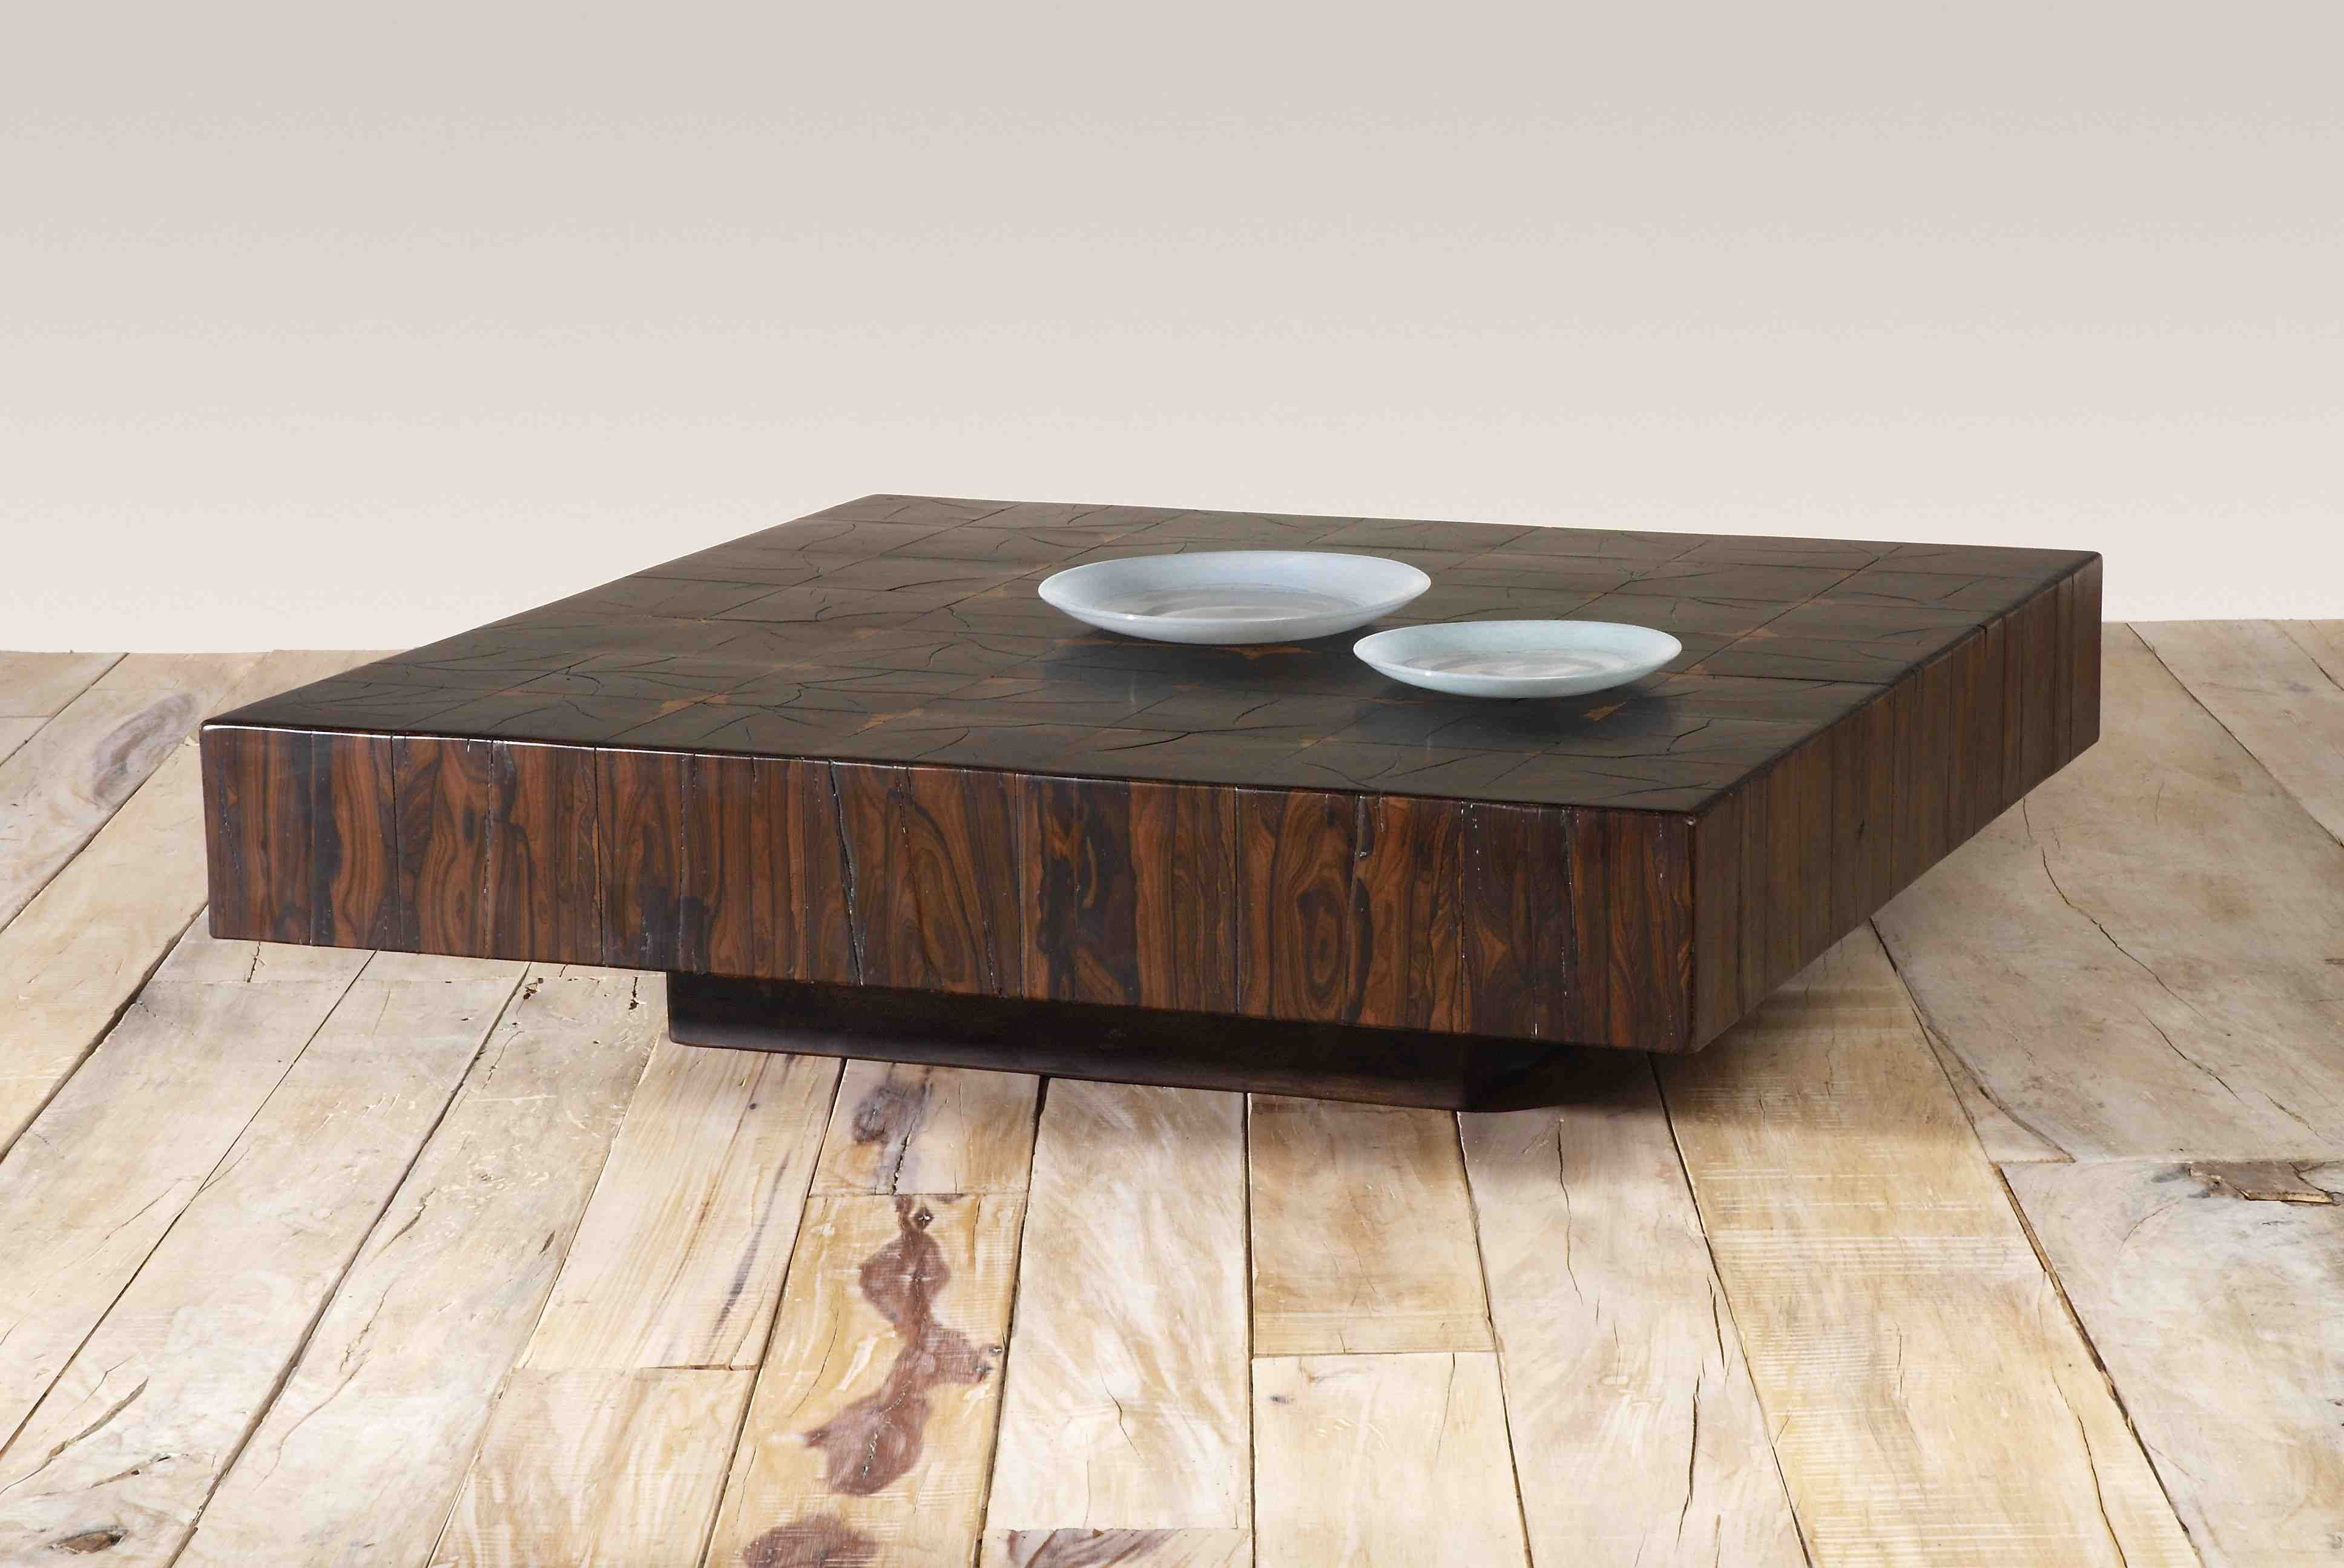 Genial Www.taracea.com Sales@taracea.com Mayan Ebony Corazones Coffee Table  Distinctive, Individually Hand Crafted Furniture Ranging From Unusual  Contemporary ...